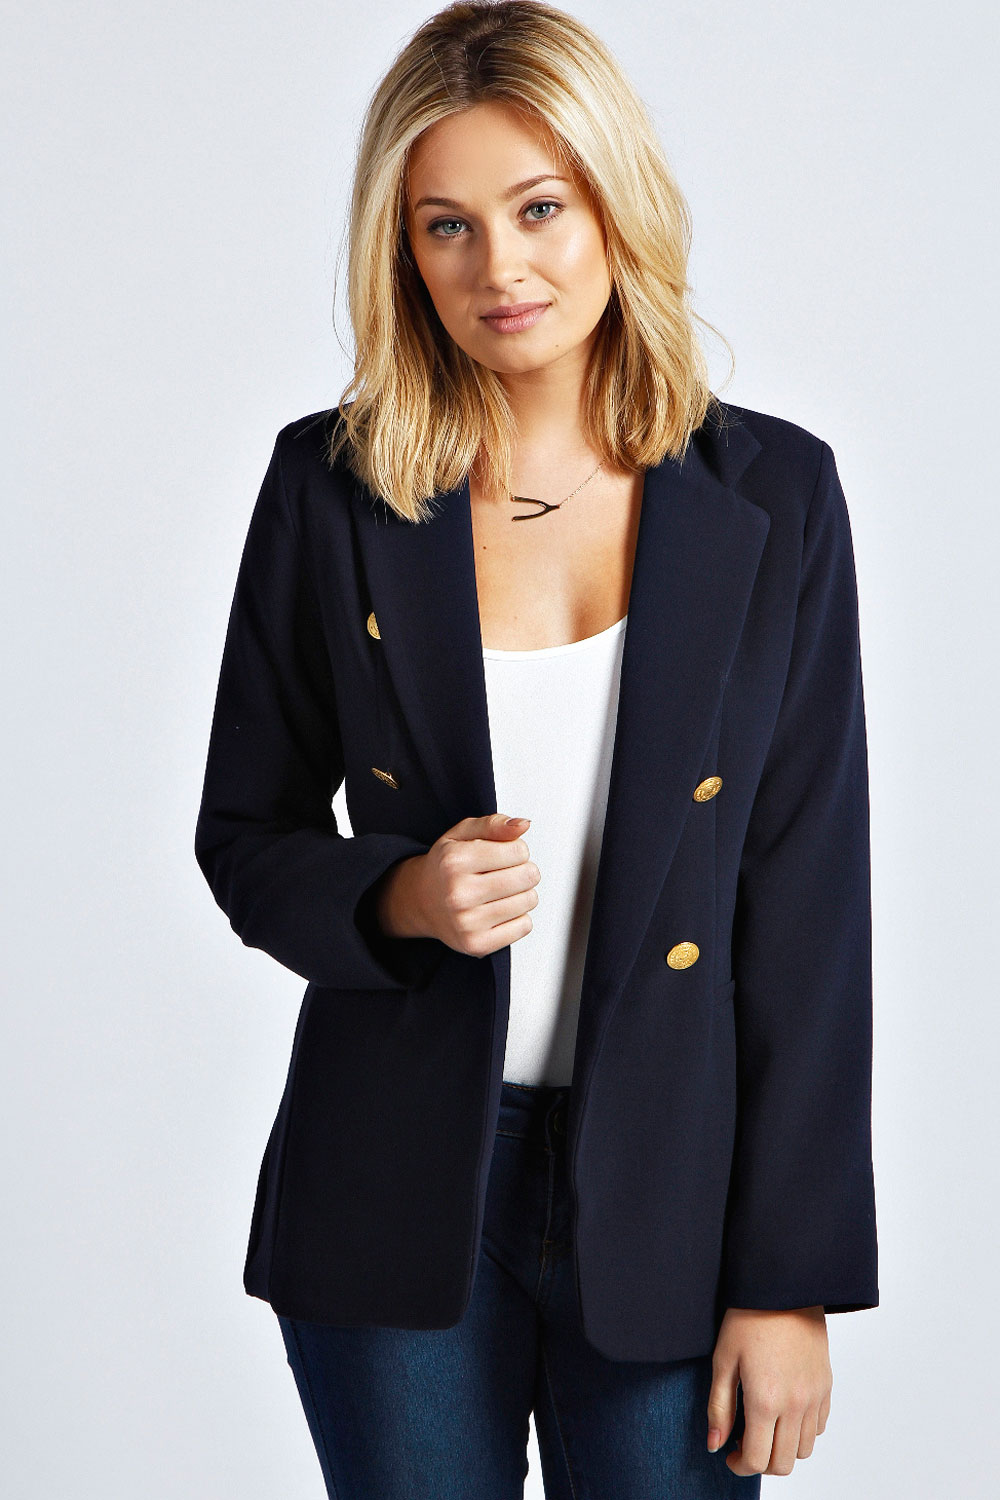 Zxzy Women Long Sleeve Blazer Open Front Cardigan Cropped Jacket Solid Color Casual Office Blazer. Sold by Nlife. $ $ Nine West Women's Hardware Blazer. Sold by Rennde. $ $ Tahari ASL Women's Denim Blazer. Sold by Rennde. $ $ - $ Kasper Women's Floral-Print Blazer.